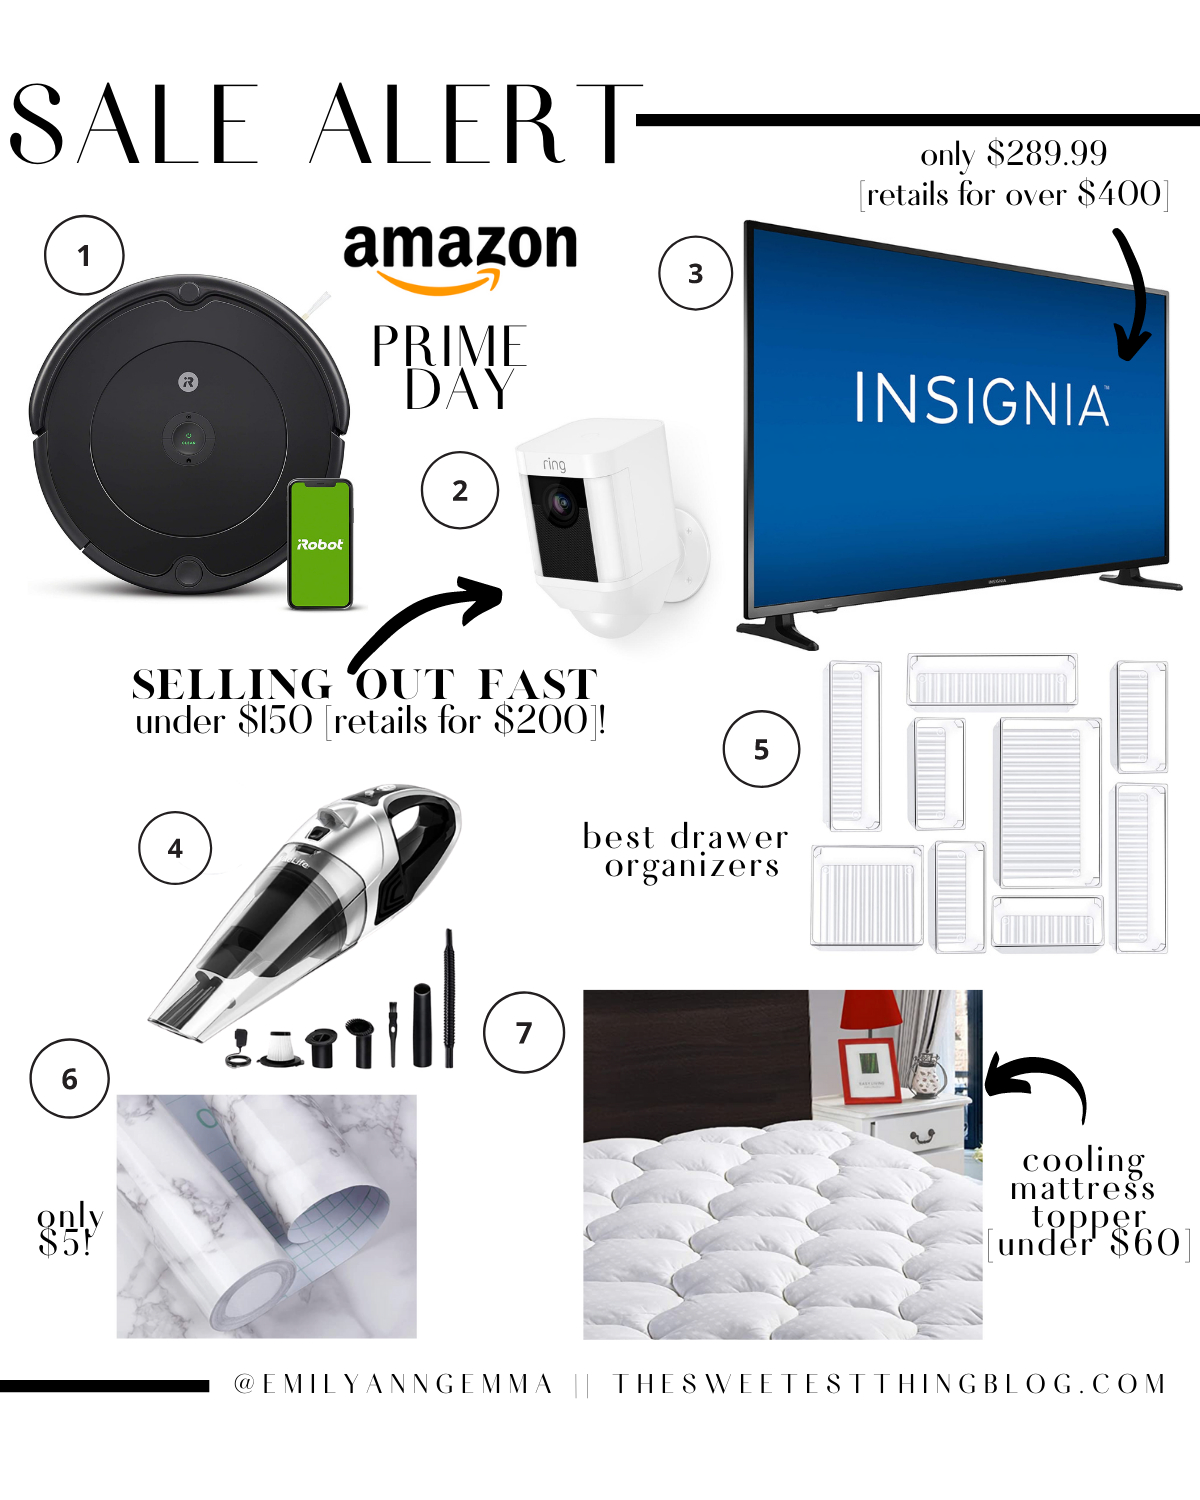 Prime Day by popular US life and style blog, The Sweetest Thing: collage image of a Insignia flat screen t.v., irobot roomba vacuum, acrylic trays, cooling mattress topper, ring camera, and a handheld vacuum,.